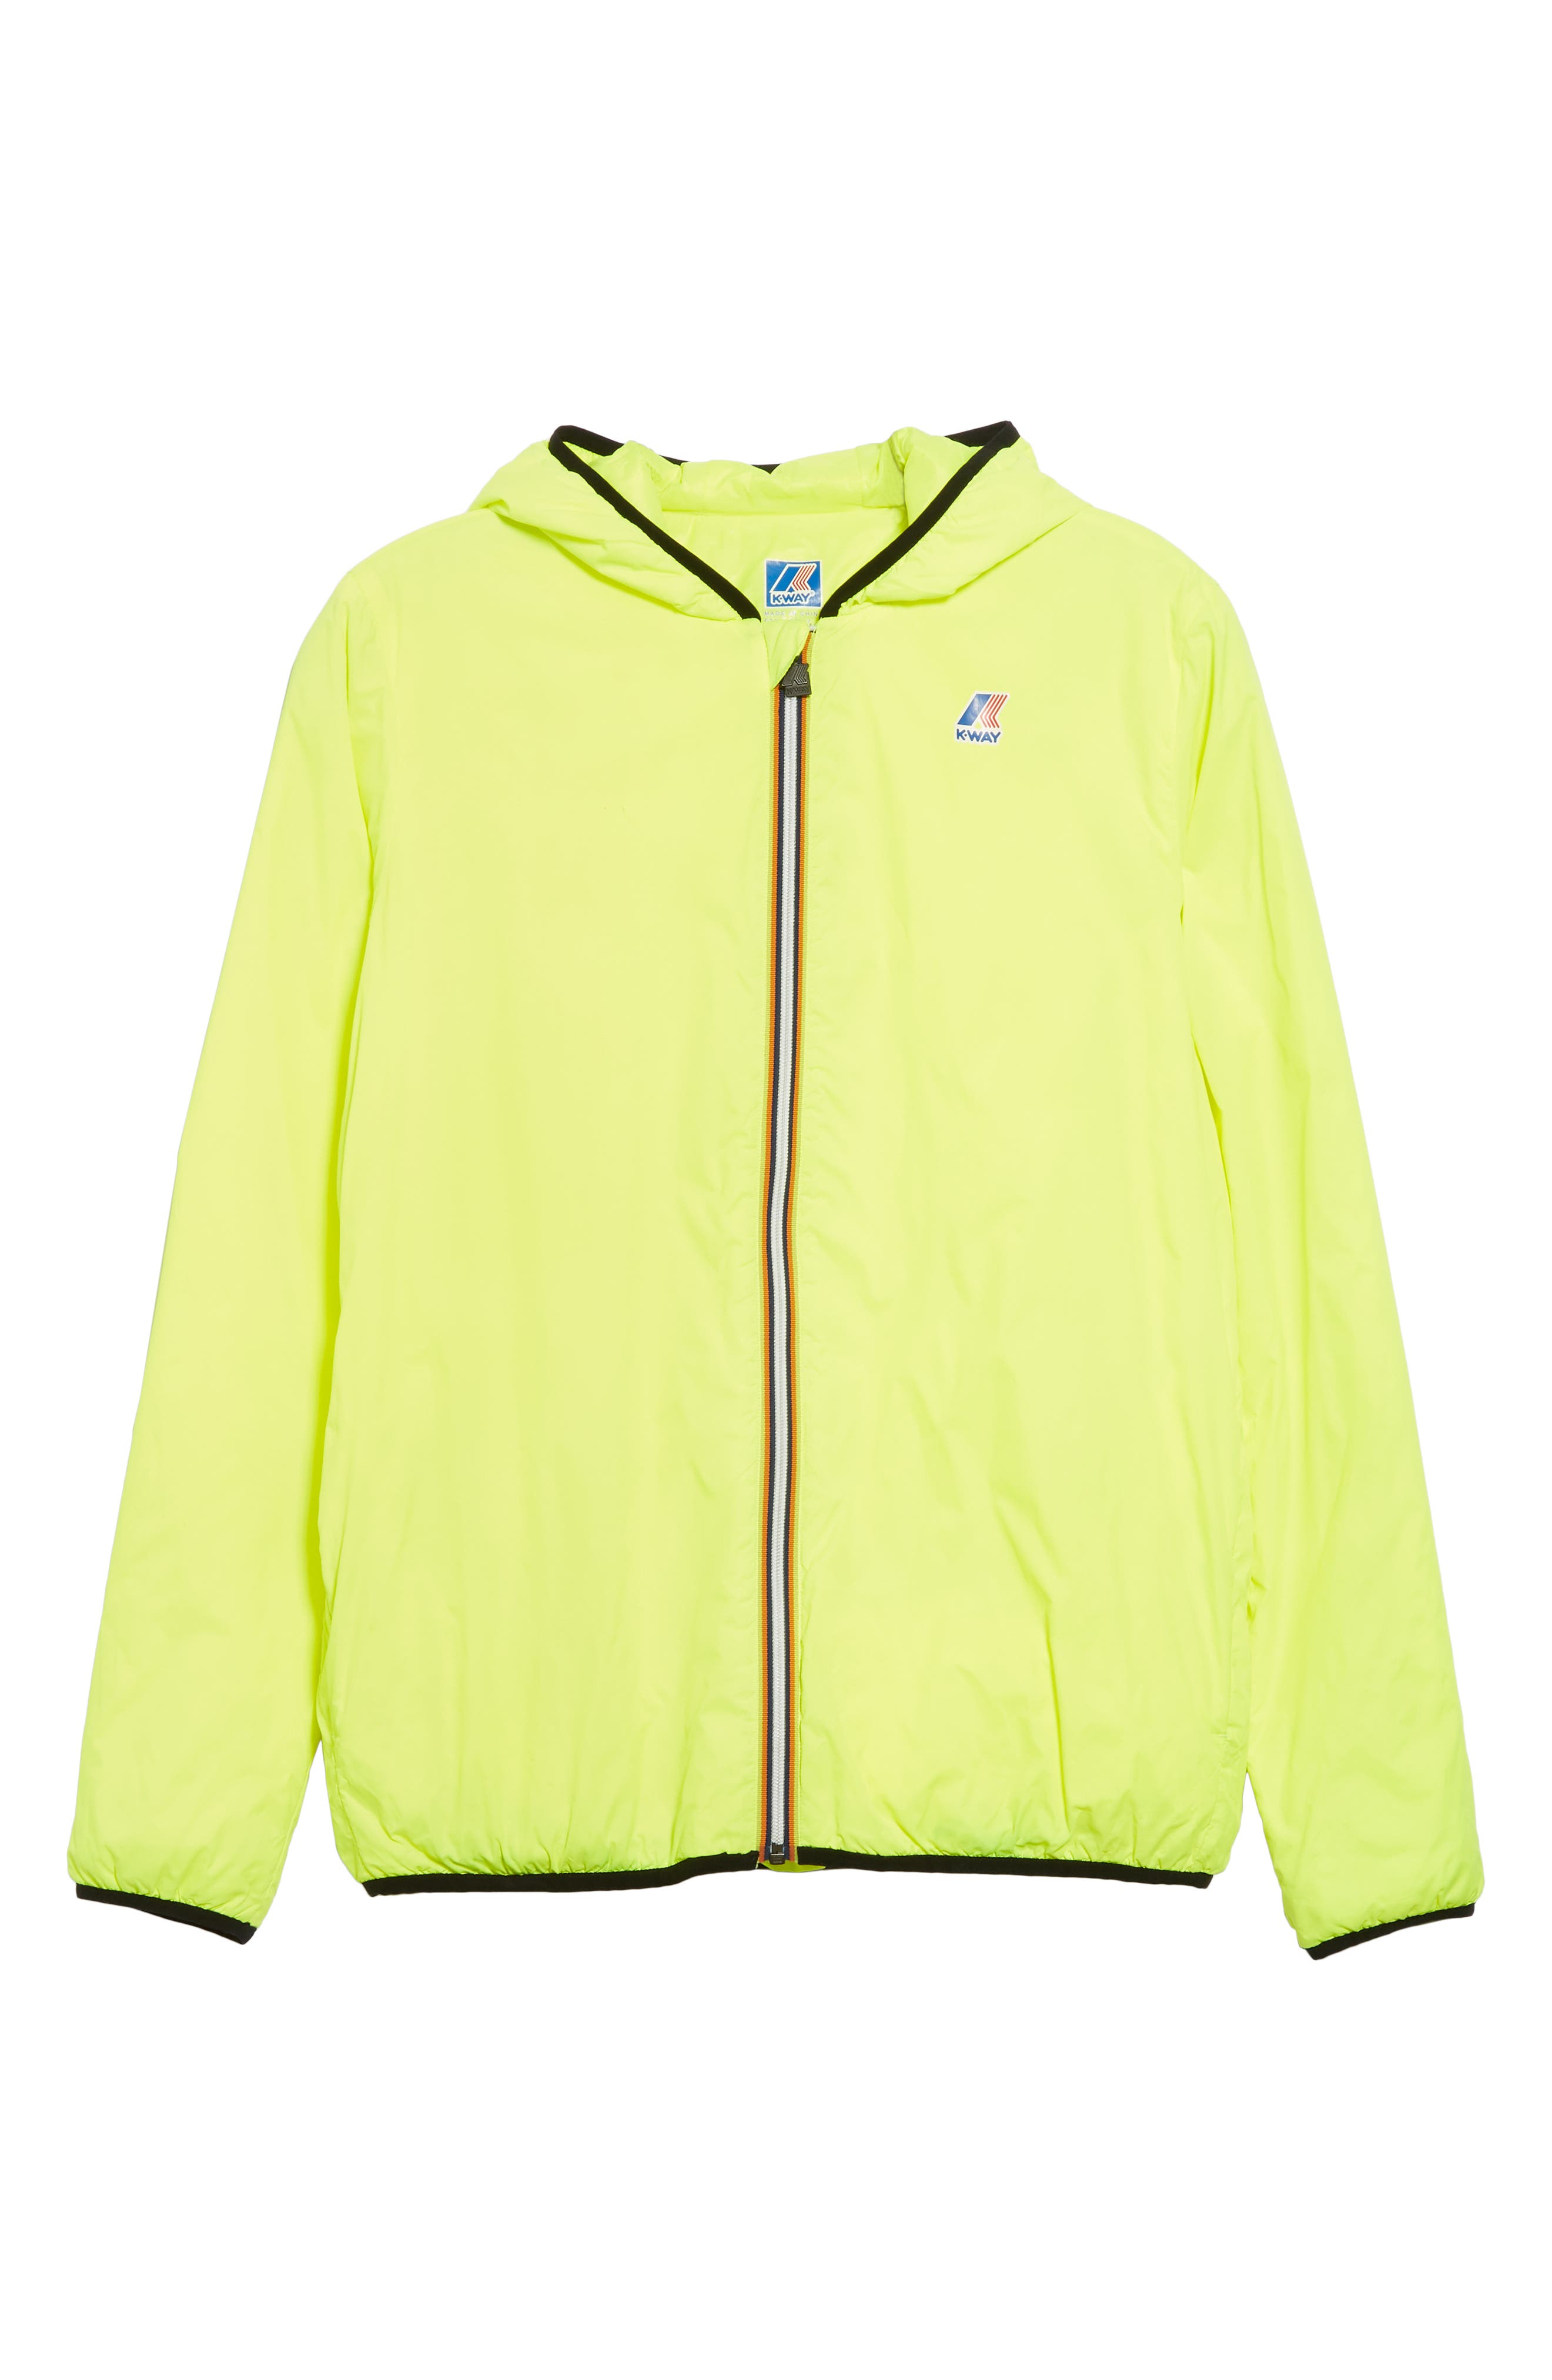 Le Vrai 3.0 Claude Light Warm Water Resistant Hooded Windbreaker,                             Main thumbnail 1, color,                             YELLOW FLUO